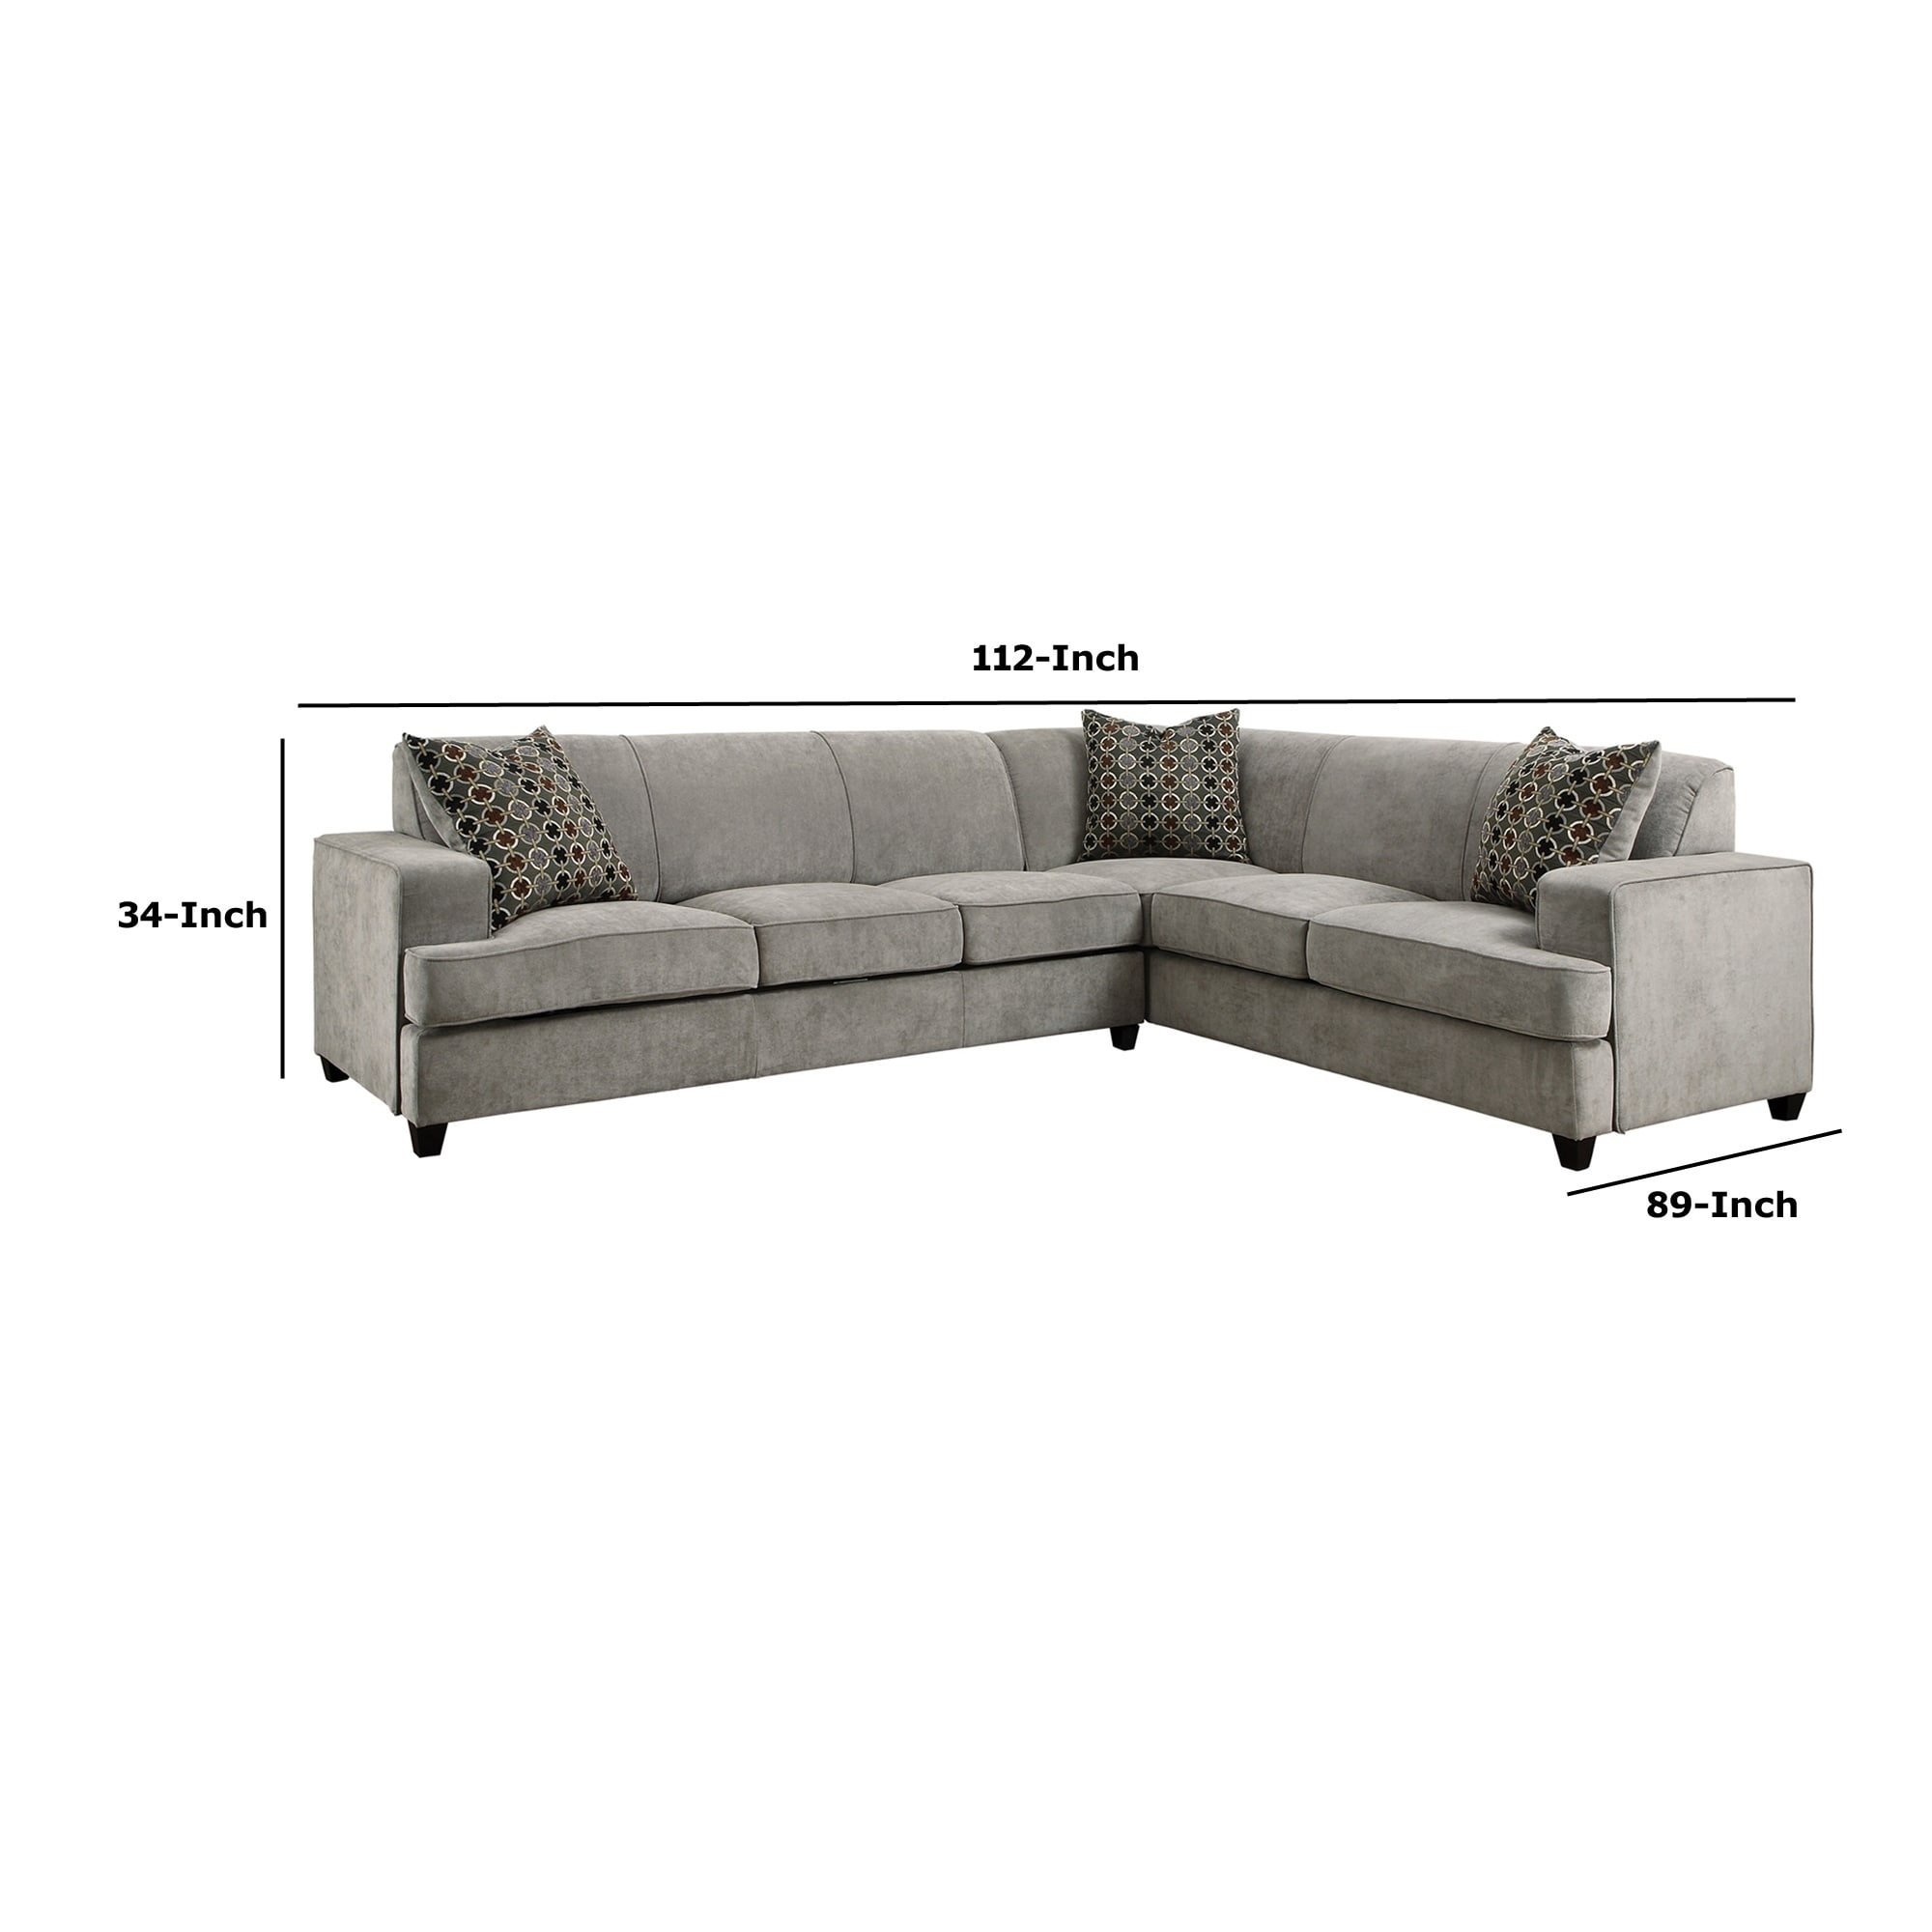 Shop Fabric Upholstered Queen Sleeper Sectional Wooden Sofa Gray